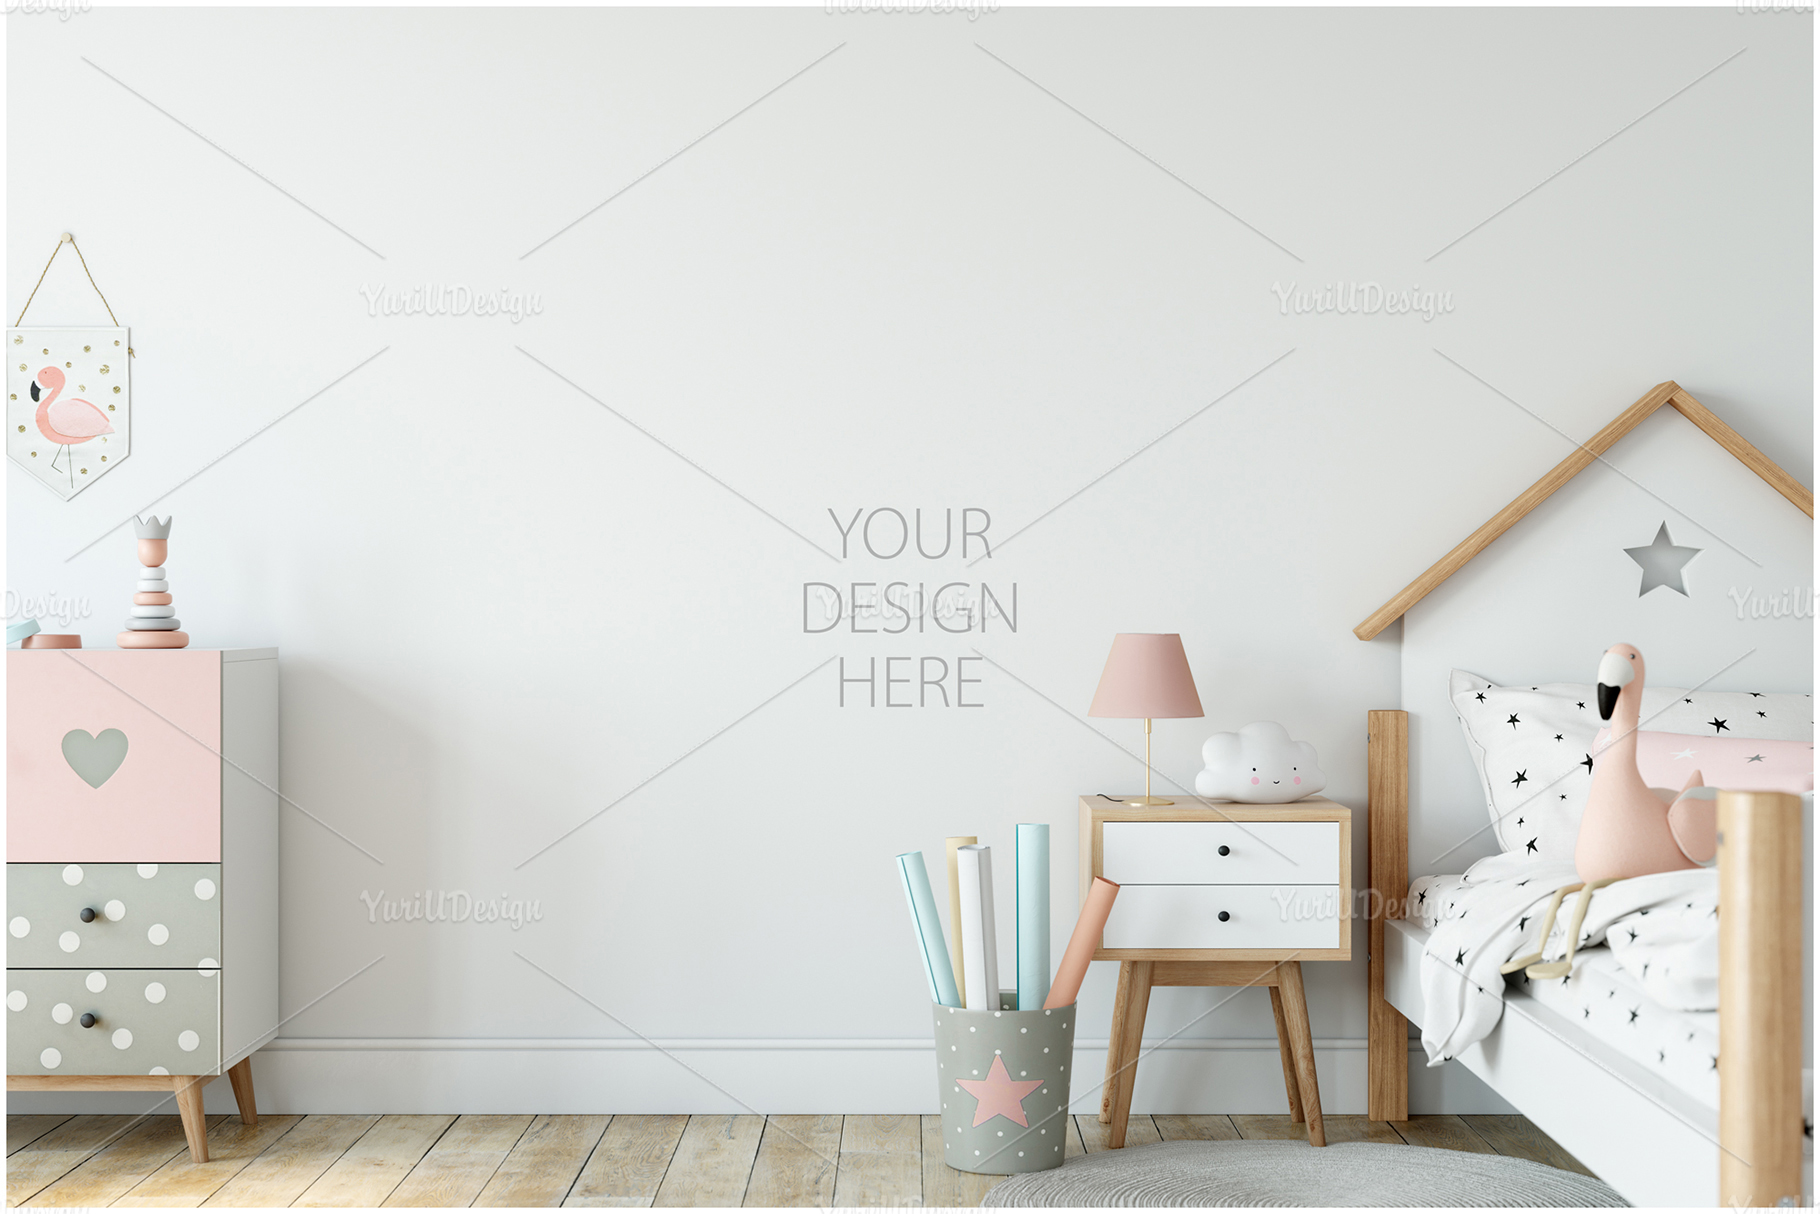 Kids Frames & Wall Mockup Bundle - 5 example image 17